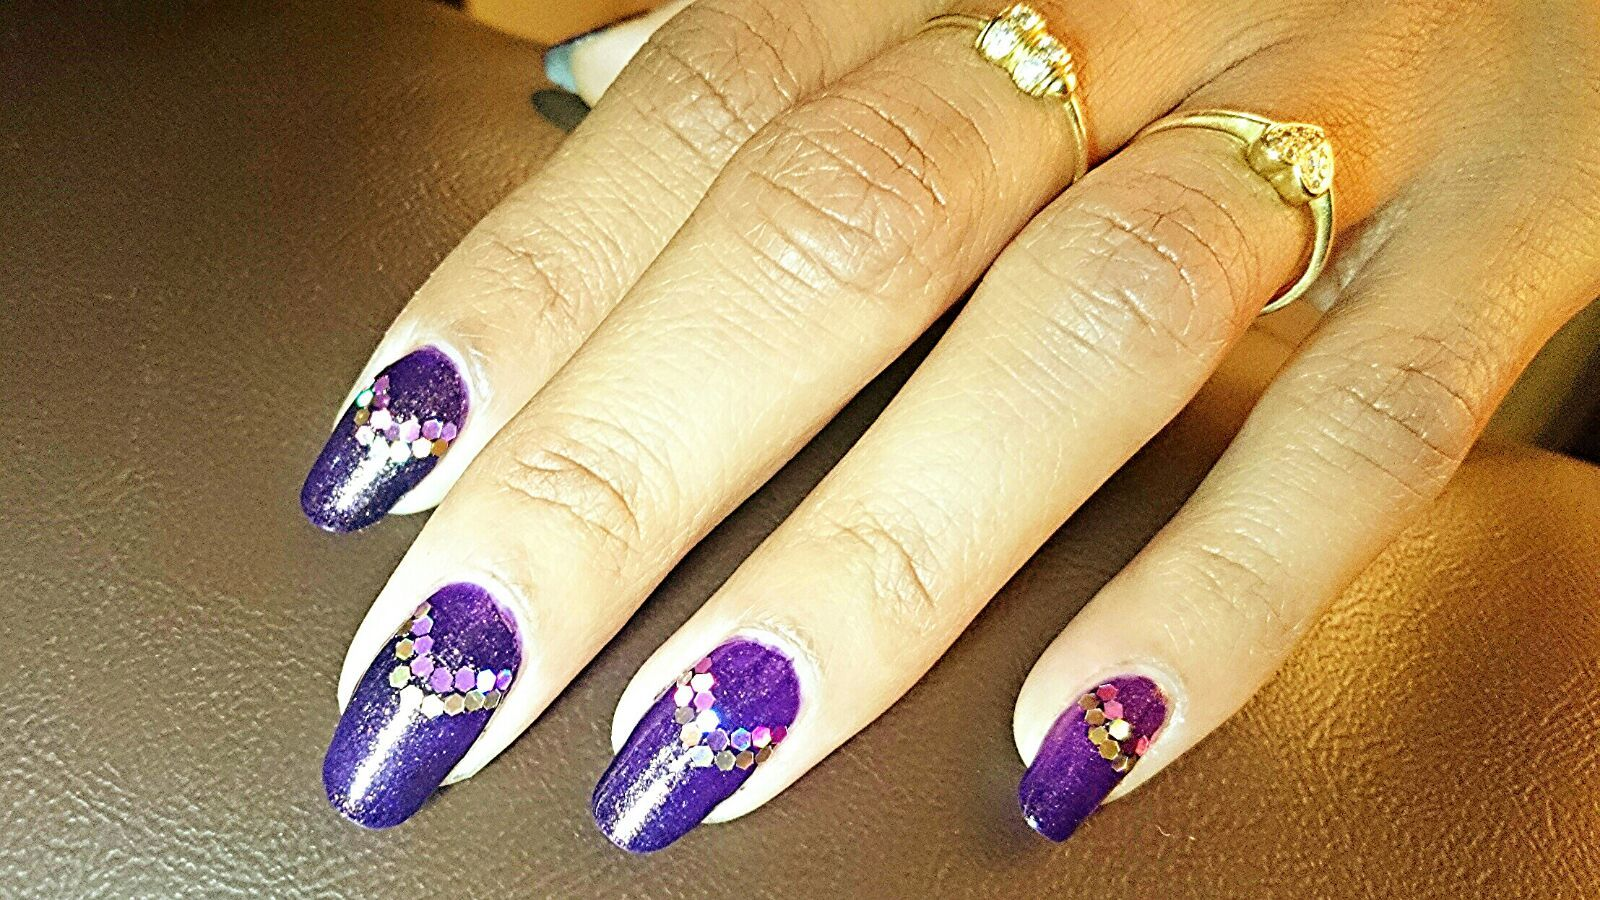 Holo Glitter Purple Nail Art Extreme Holo Glittery Nails By